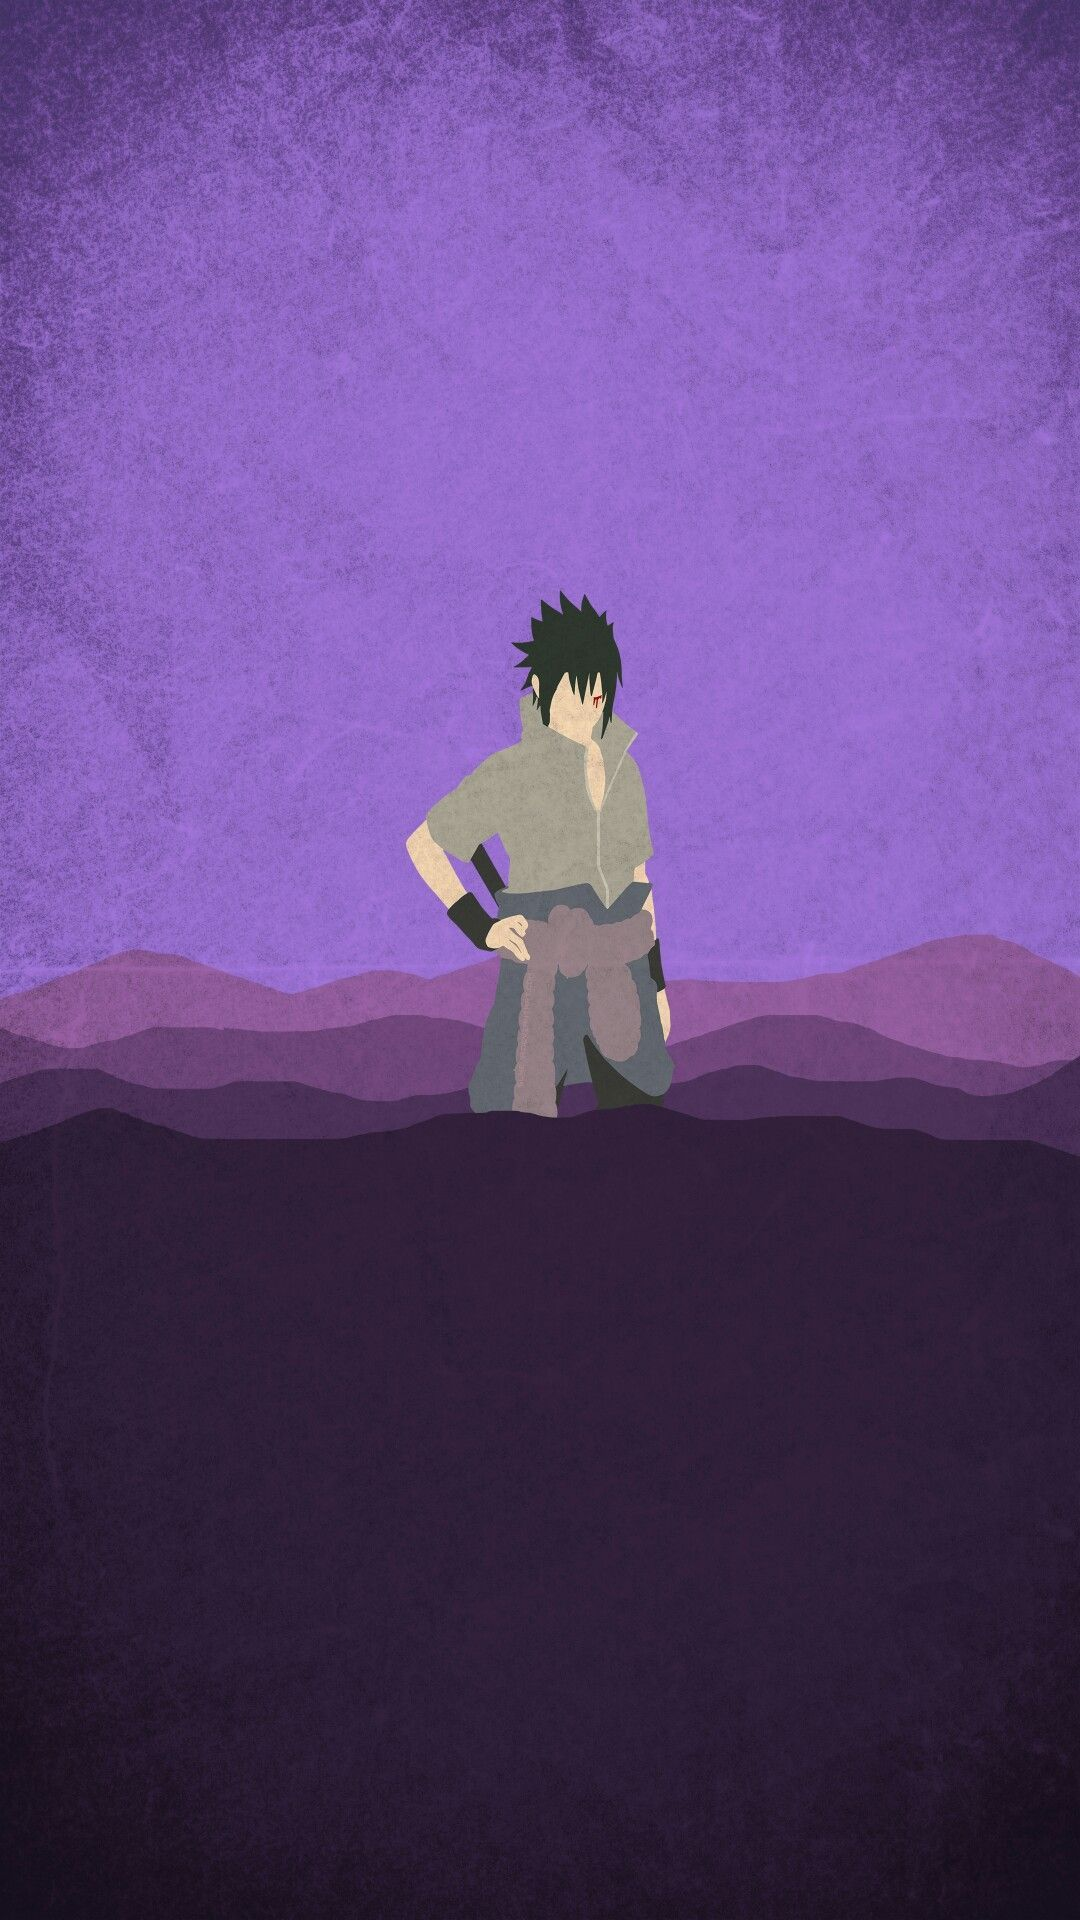 Uchiha Sasuke Naruto Iphone X Wallpaper Iphone Wallpaper